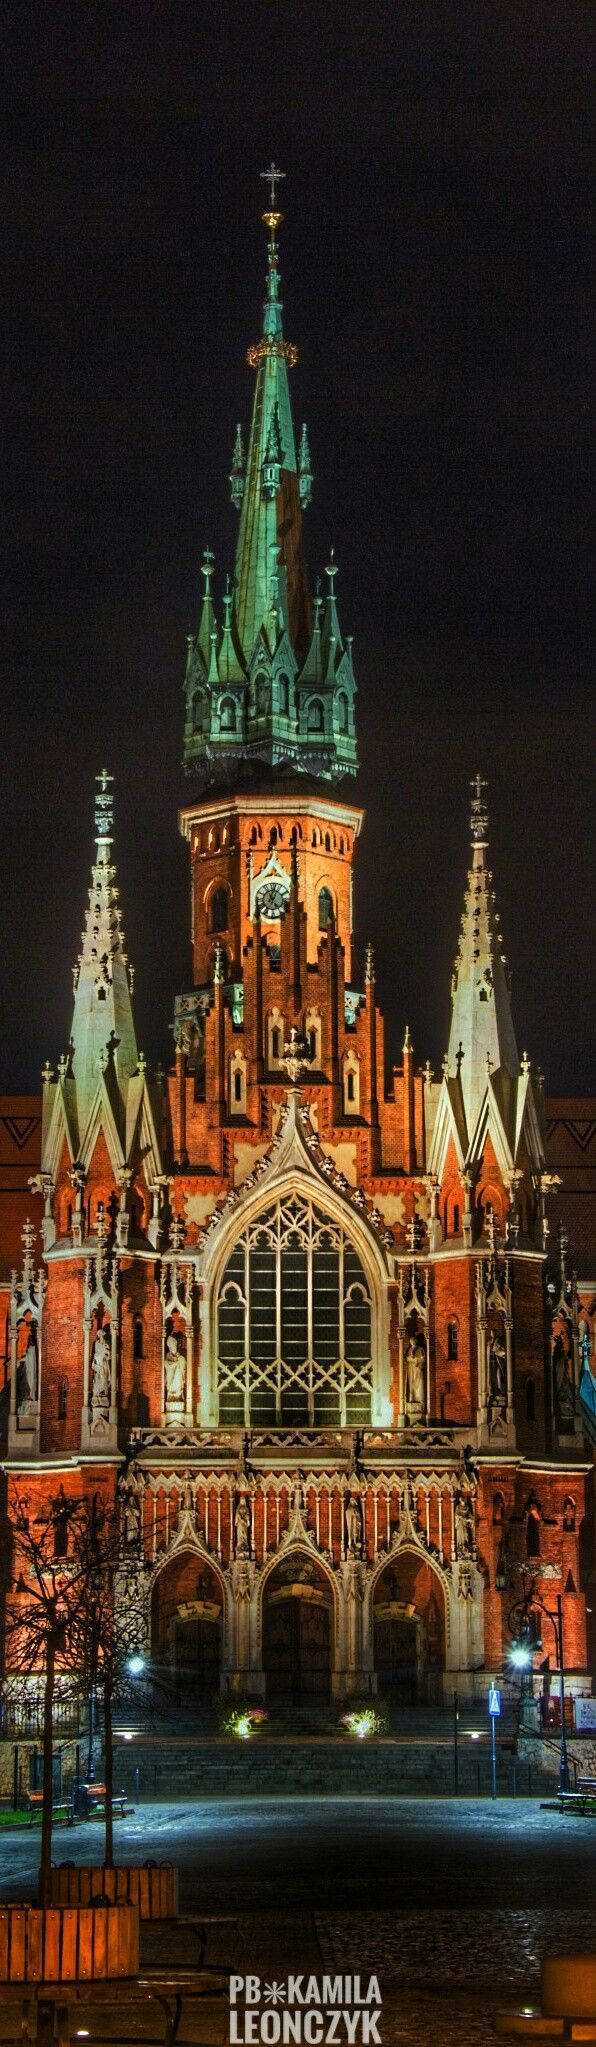 St. Joseph's Church - is a historic Roman Catholic church in Podgórze district of Kraków, Poland, at Podgórski Square on the northern slopes of the Krzemionki foothills in the south-central part of the city. The church was built between 1905 and 1909, and designed by Jan Sas Zubrzycki, in Gothic Revival style. It is the largest church in the area